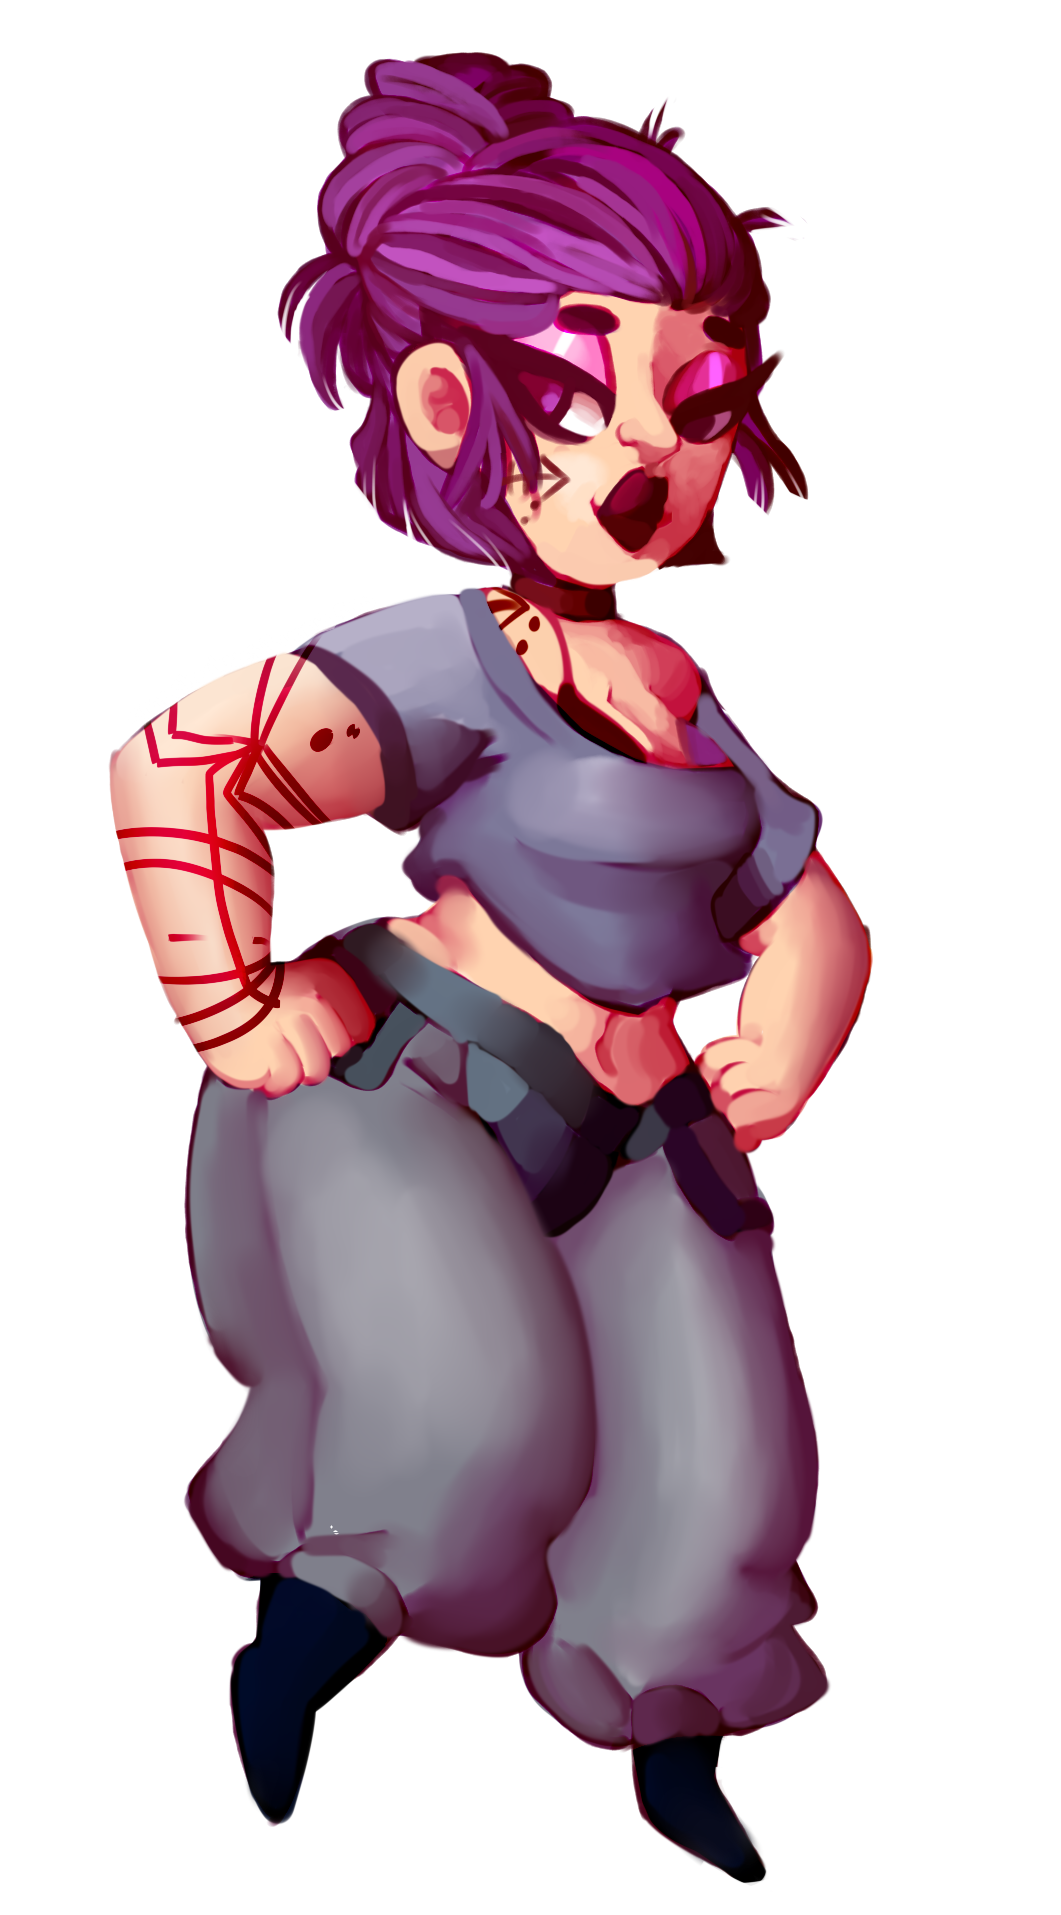 Dominican oc [COMMISSION] by SmasherlovesBunny500